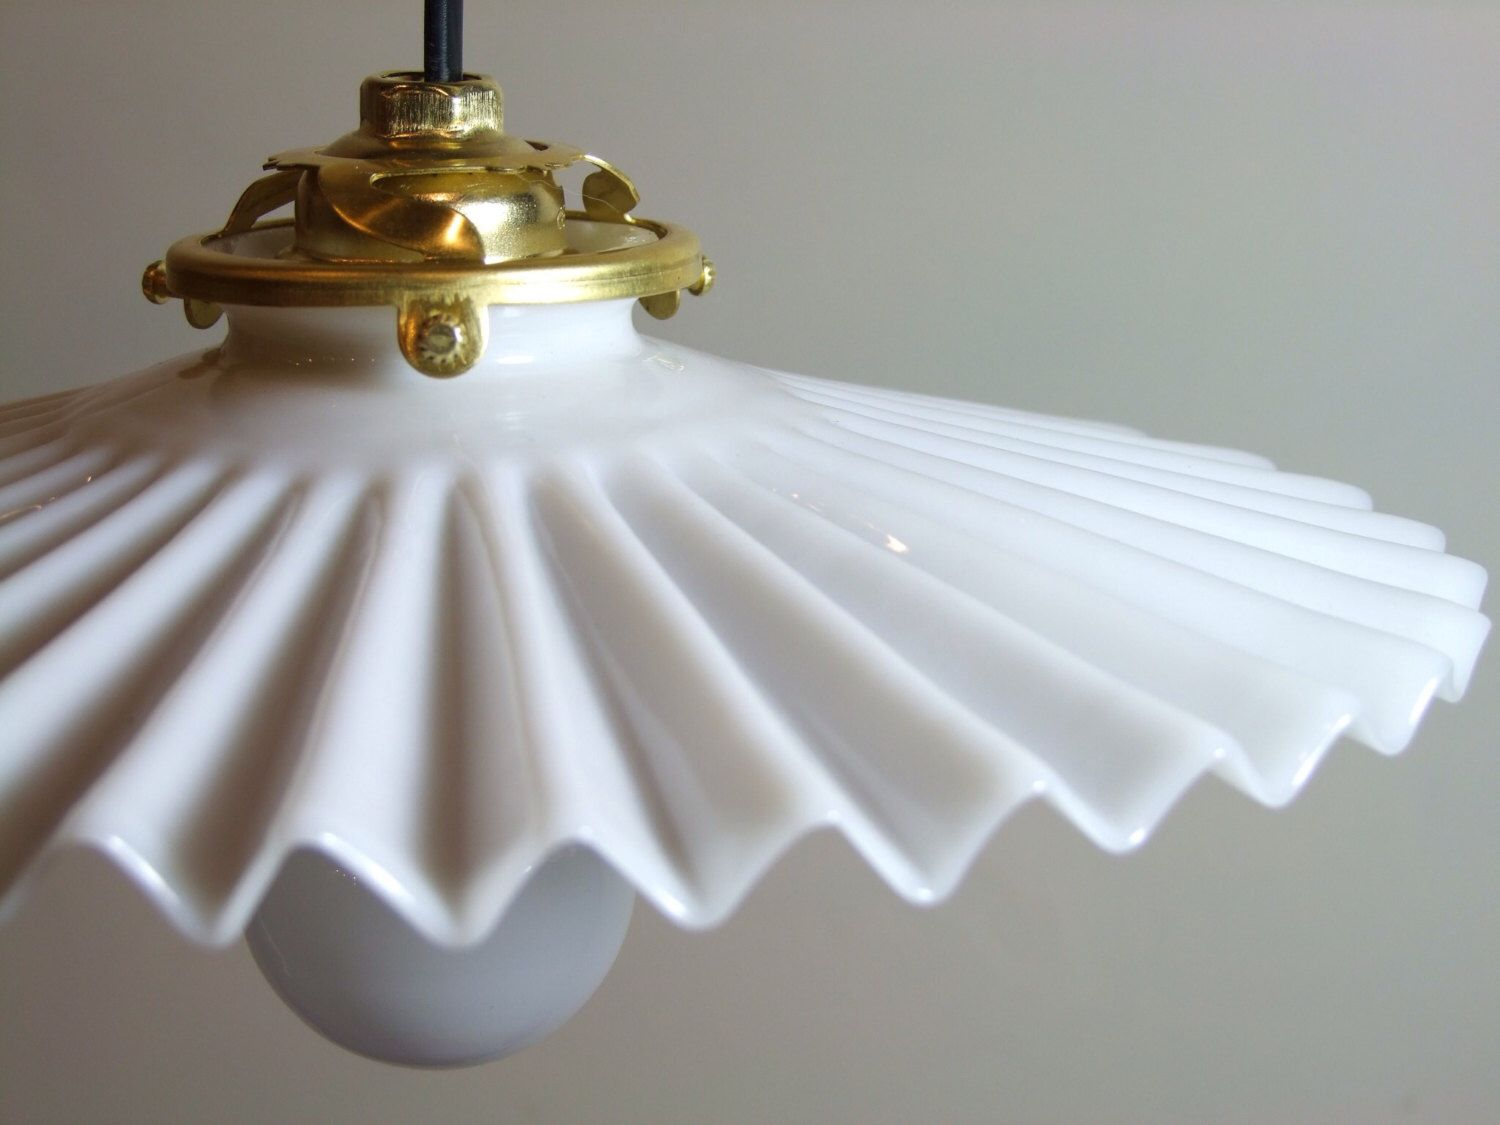 Glorious Vintage French Milkglass Lampshade Crinkle Design Opaque Glass Pendant Light Fitting Milk Glass French Vintage